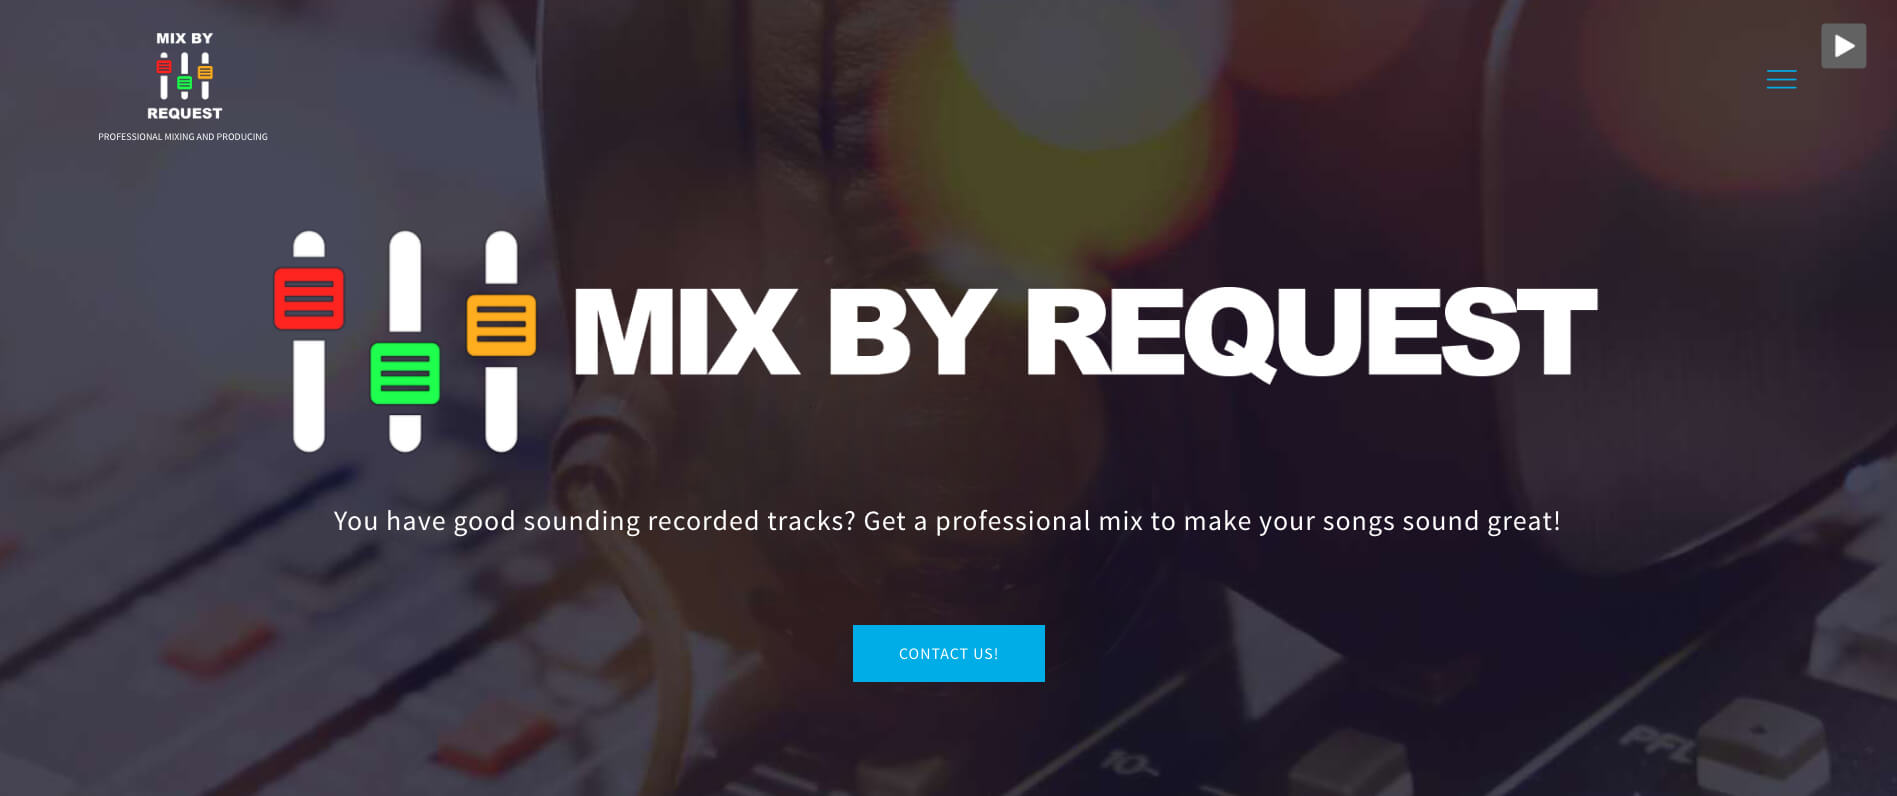 Mix By Request!®